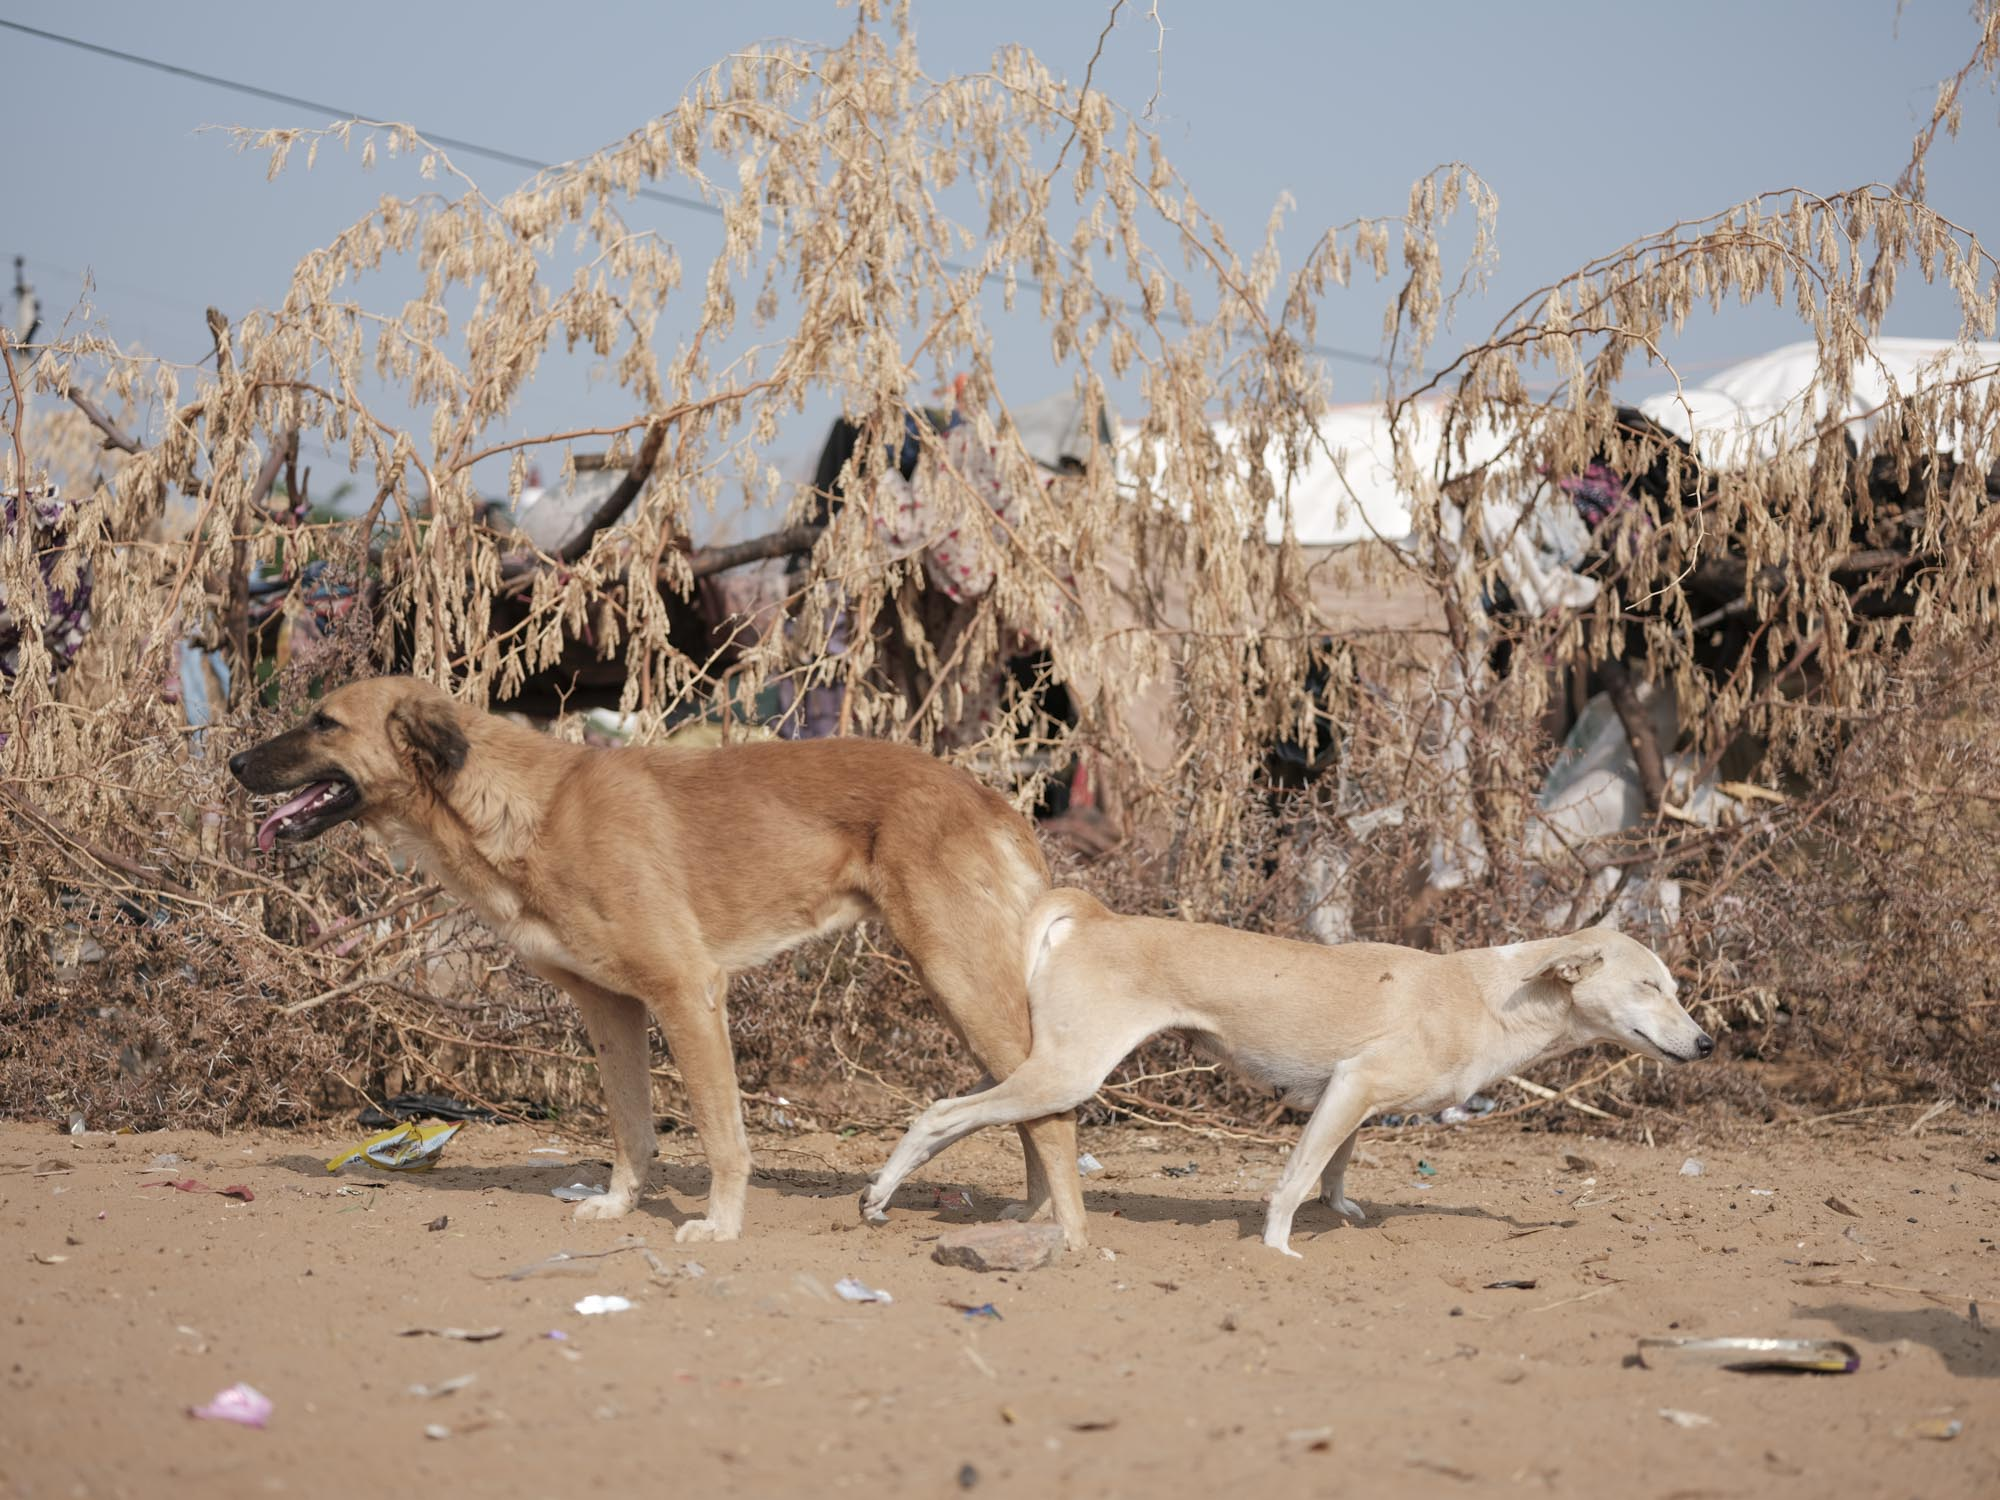 dogs Gypsy Kalbelia tribe nomad Rajasthan India Documentary Photography Jose Jeuland Photographer print fine art